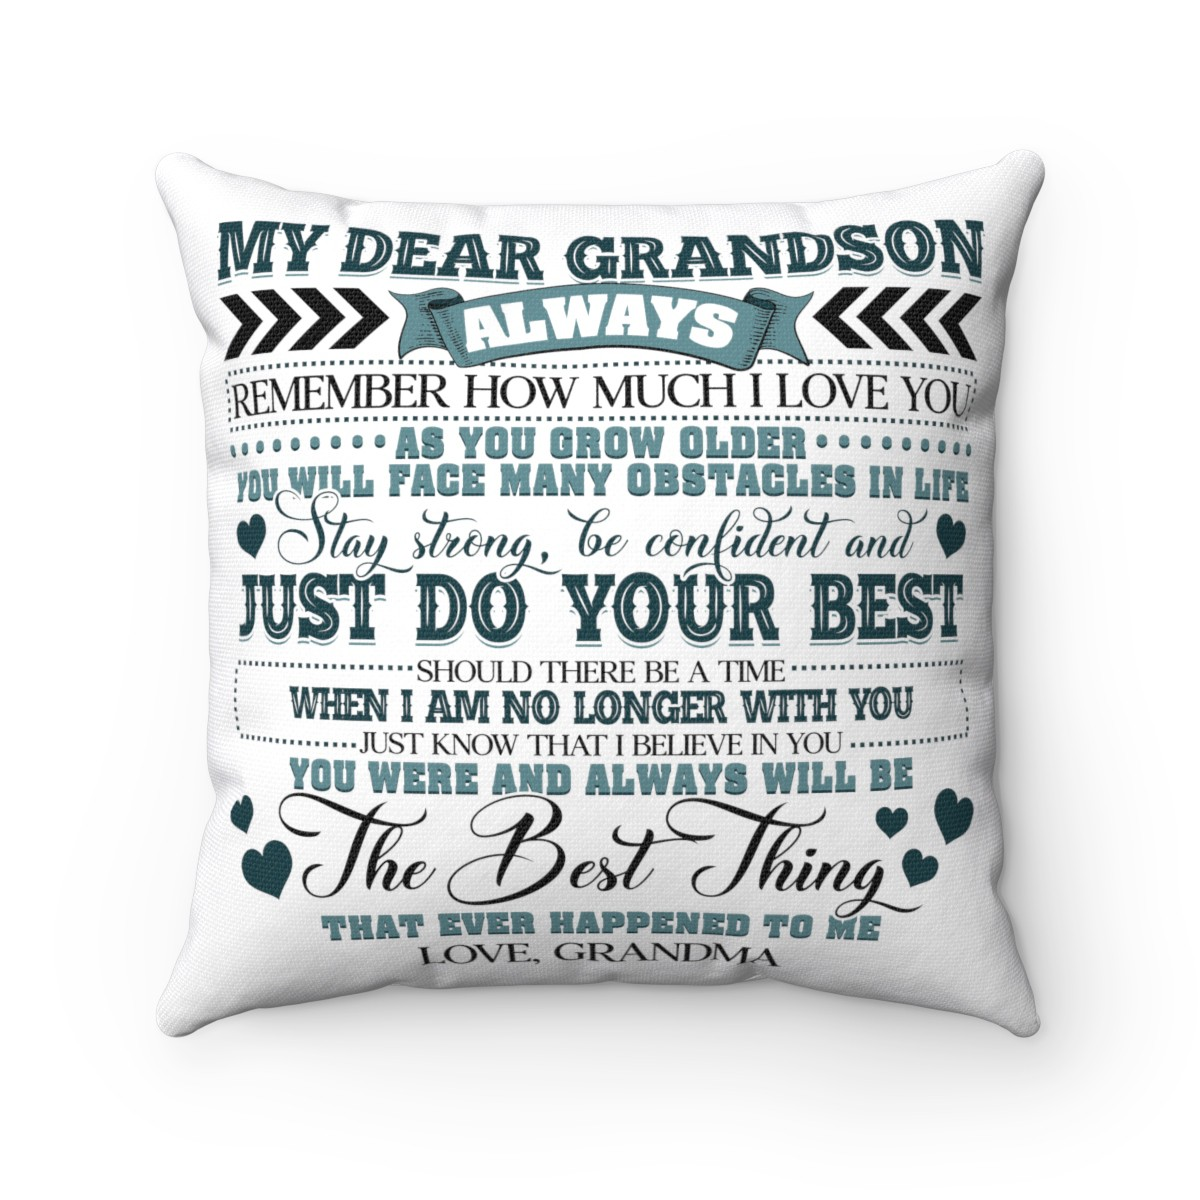 my dear grandson always remember how much i love you throw pillow decorative pillow indoor outdoor cushion